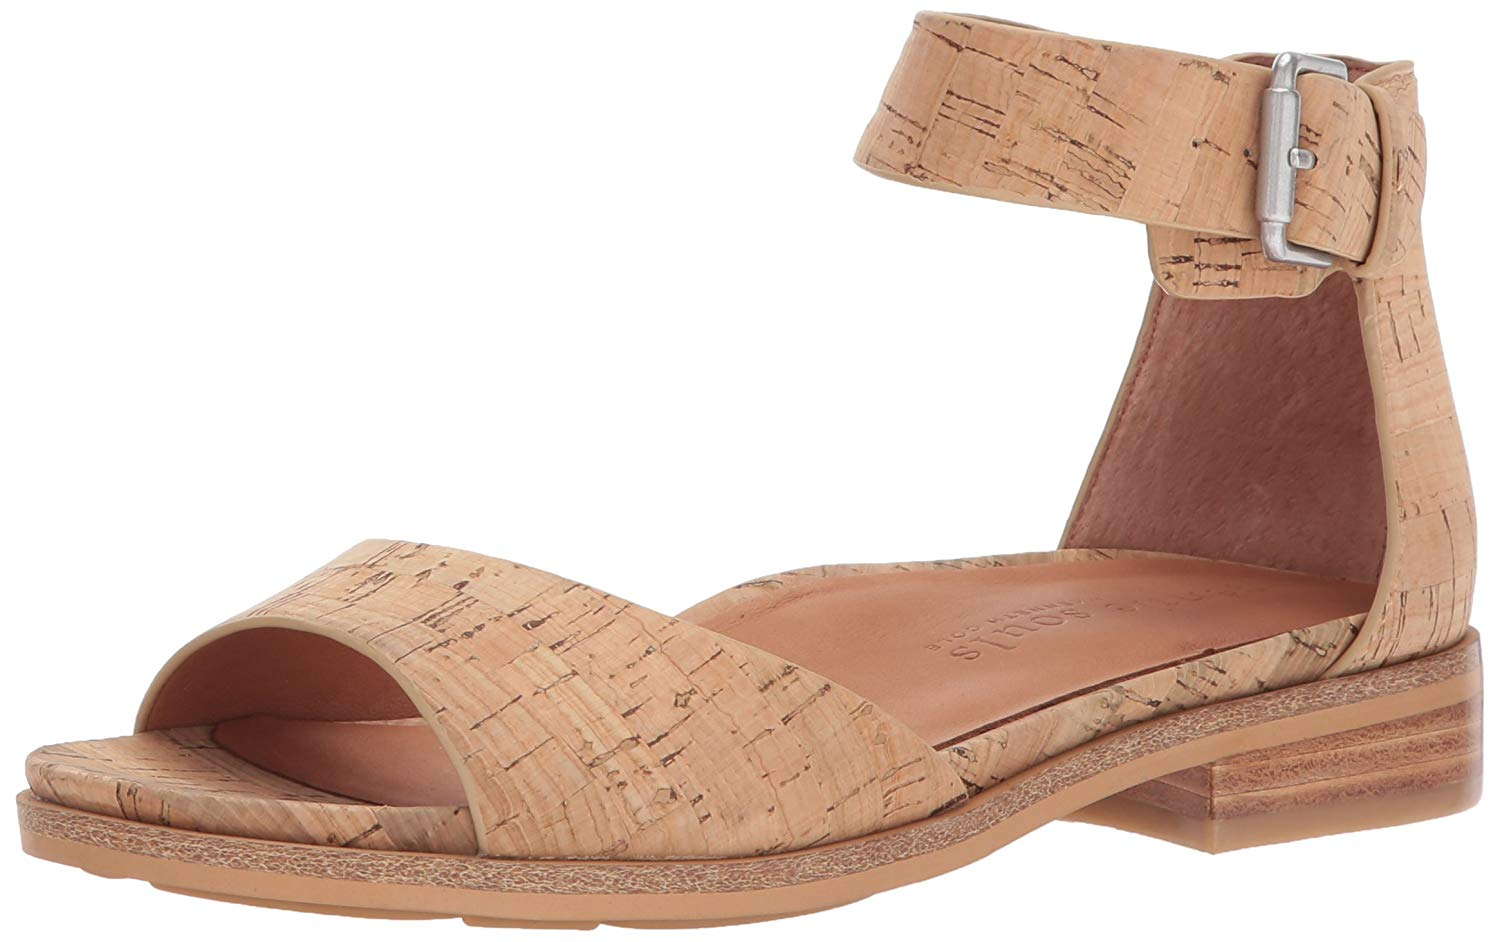 c9c53e25489 Details about Gentle Souls Women s Gracey Flat Sandal with Ankle Strap